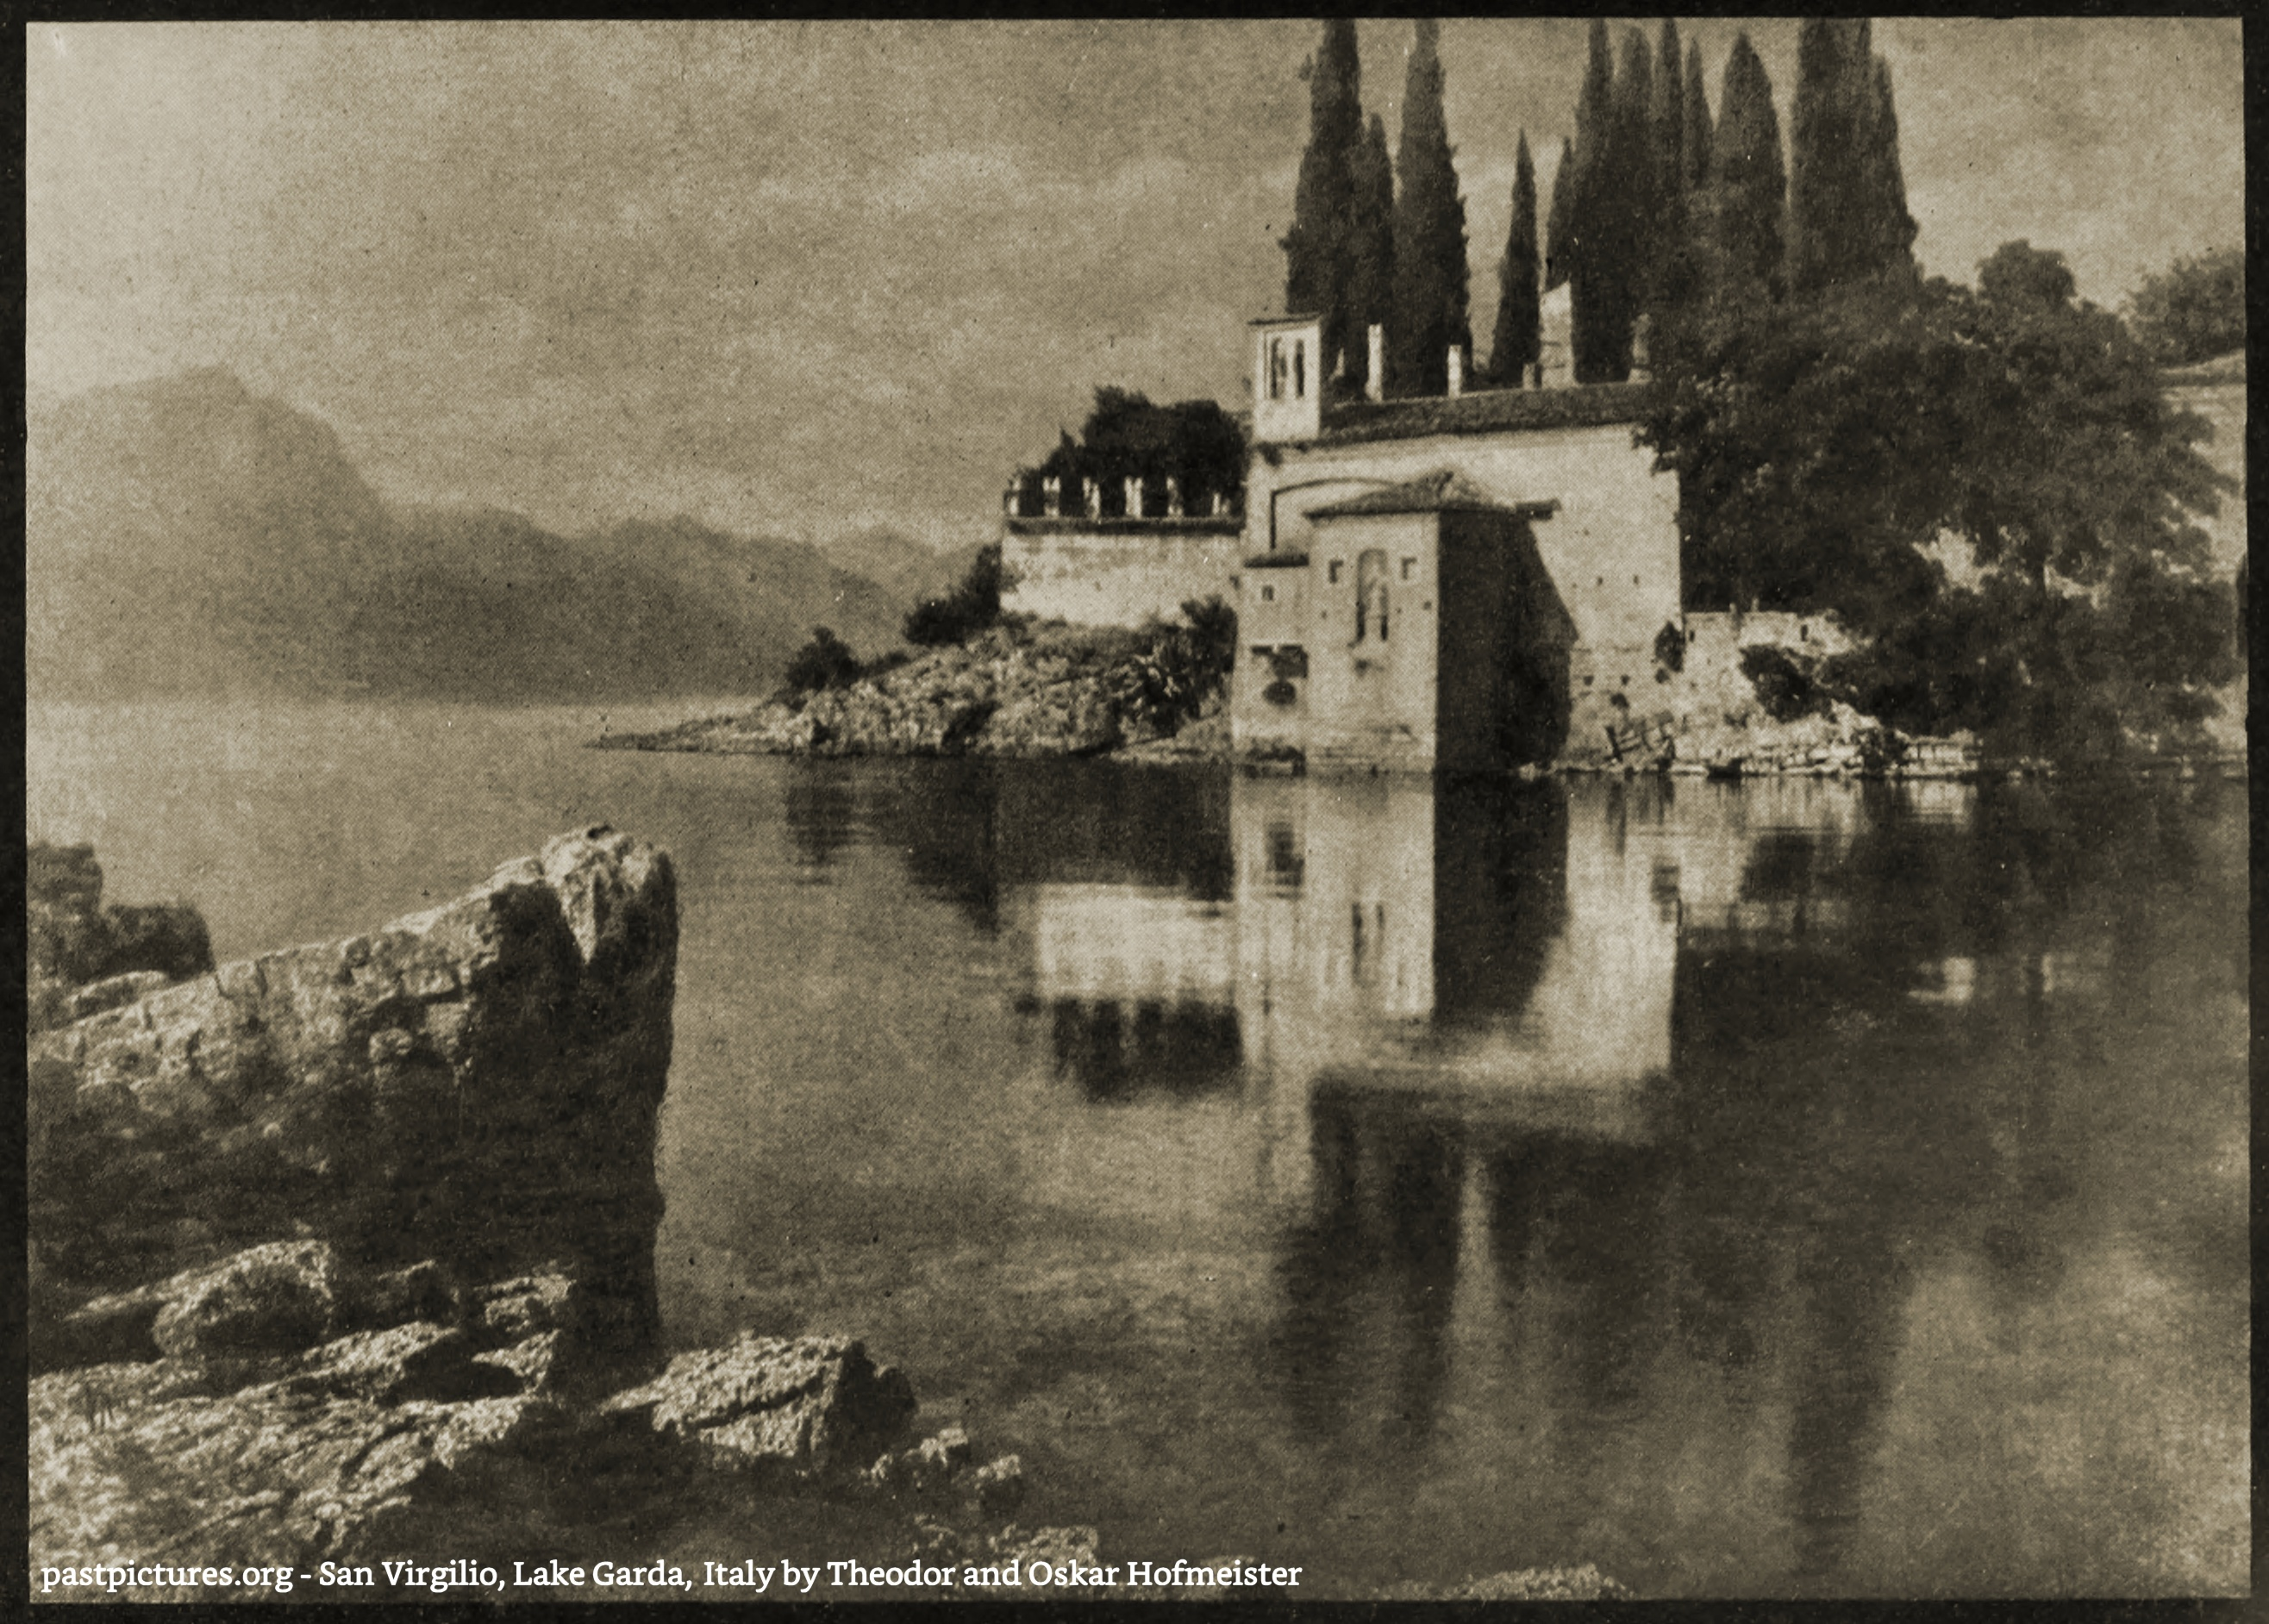 San Virgilio, Lake Garda, Italy by Theodor and Oskar Hofmeister about 1900